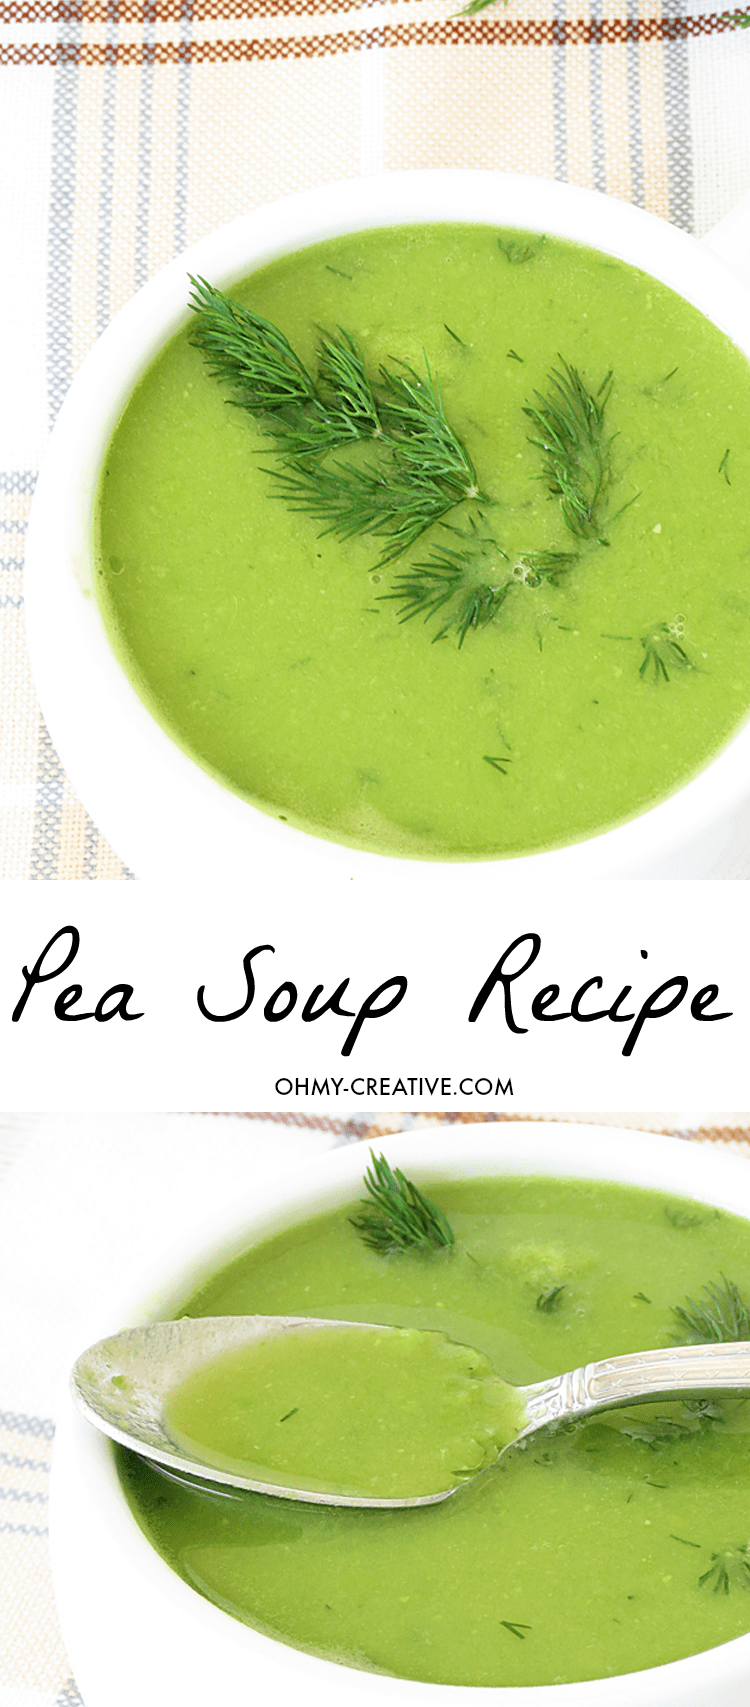 Green Pea Soup Recipe - creamy and simple pea soup made in under 40 minutes! I Ilona's Passion for OHMY-CREATIVE.COM